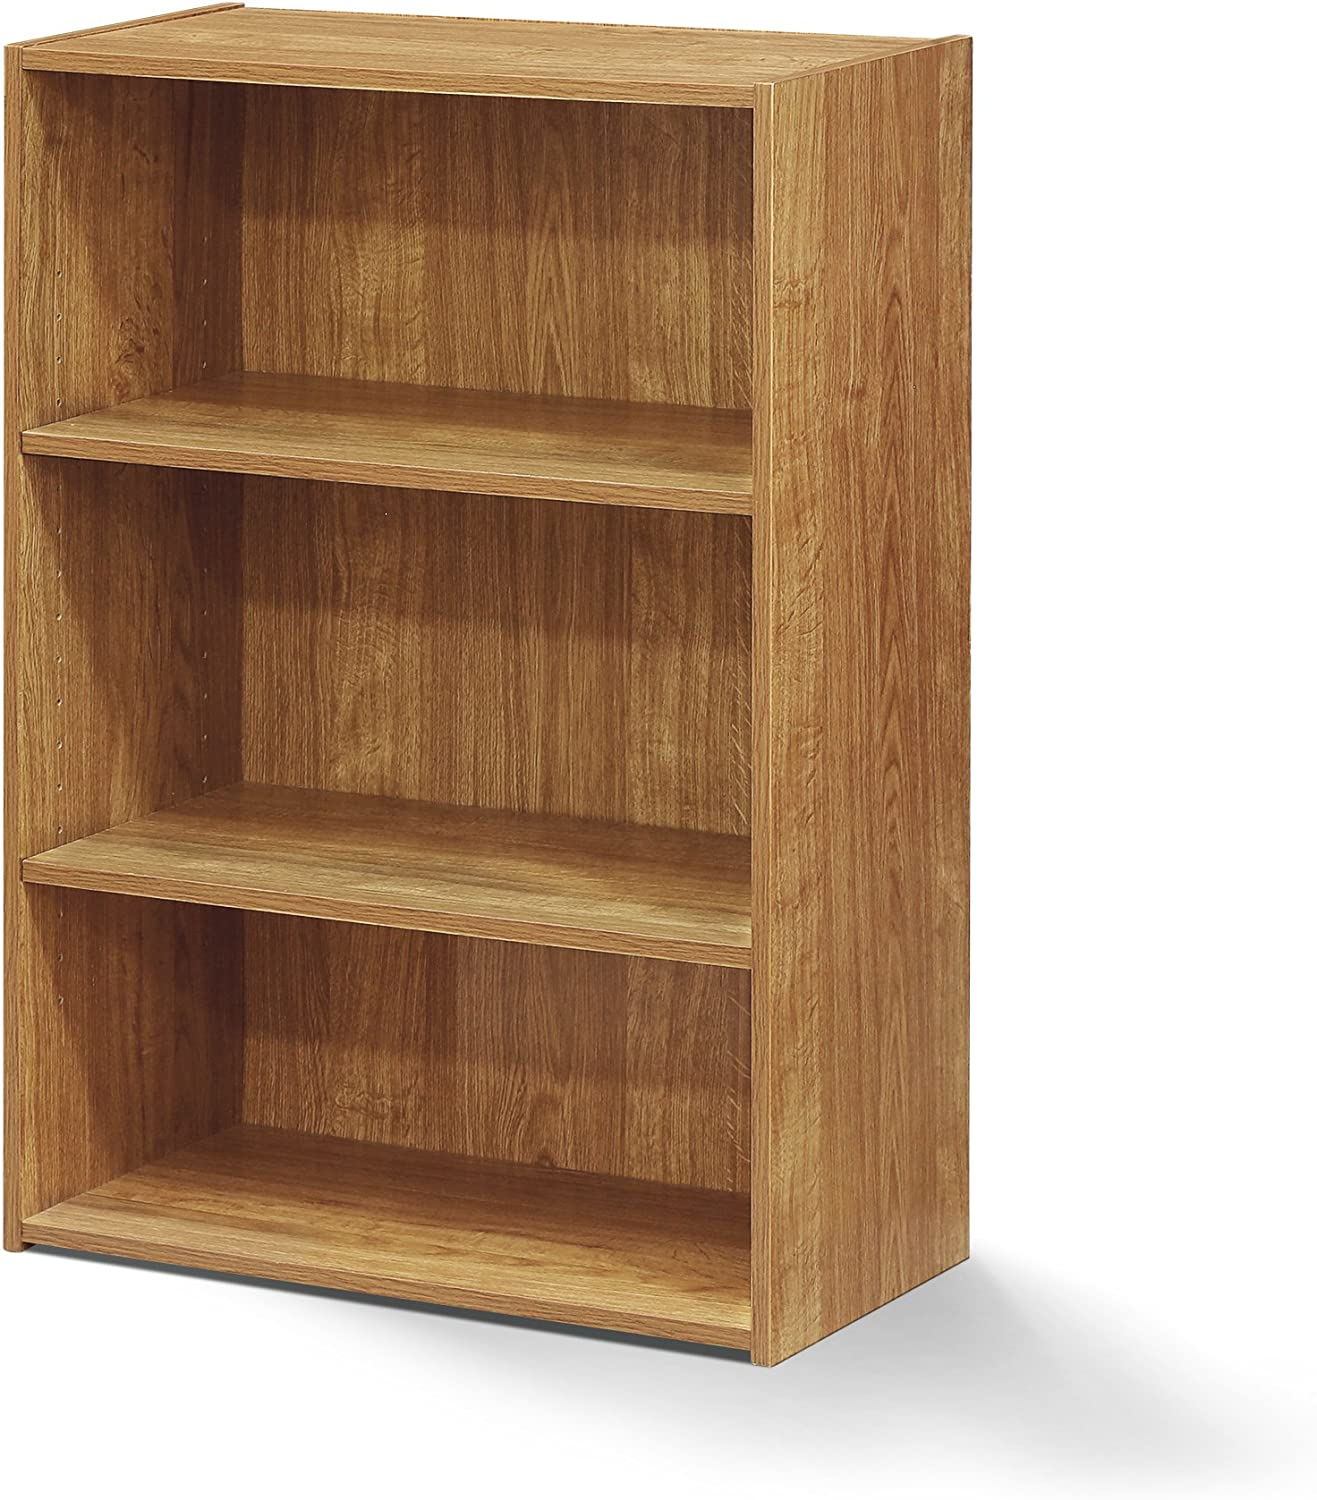 Furinno 17060HO Bookcase, 3 Shelf, Highland Oak